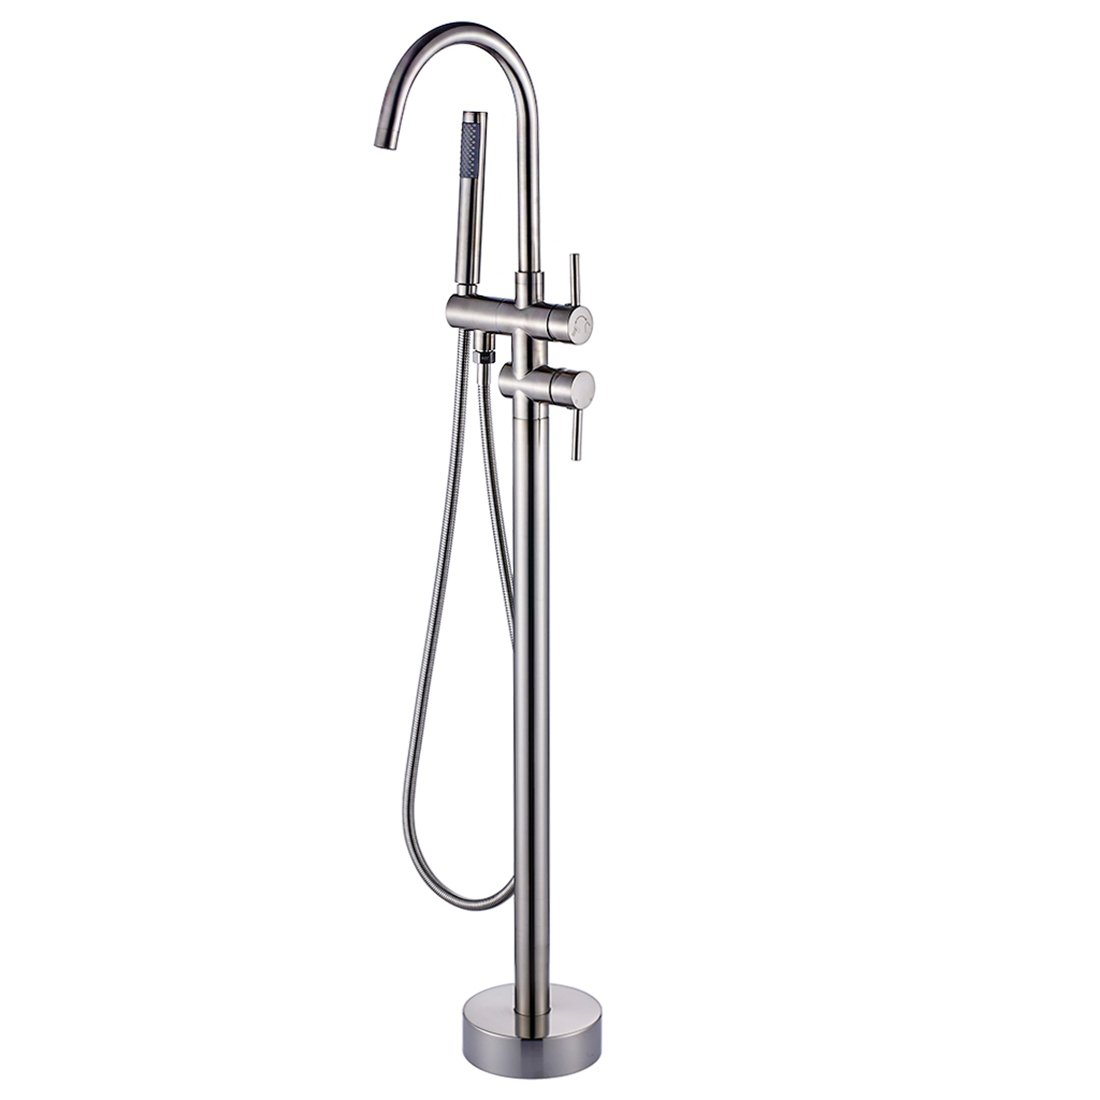 Fapully Luxury Bathroom Free-standing Bathtub Faucet Tub Filler with Hand Shower Brushed Nickel